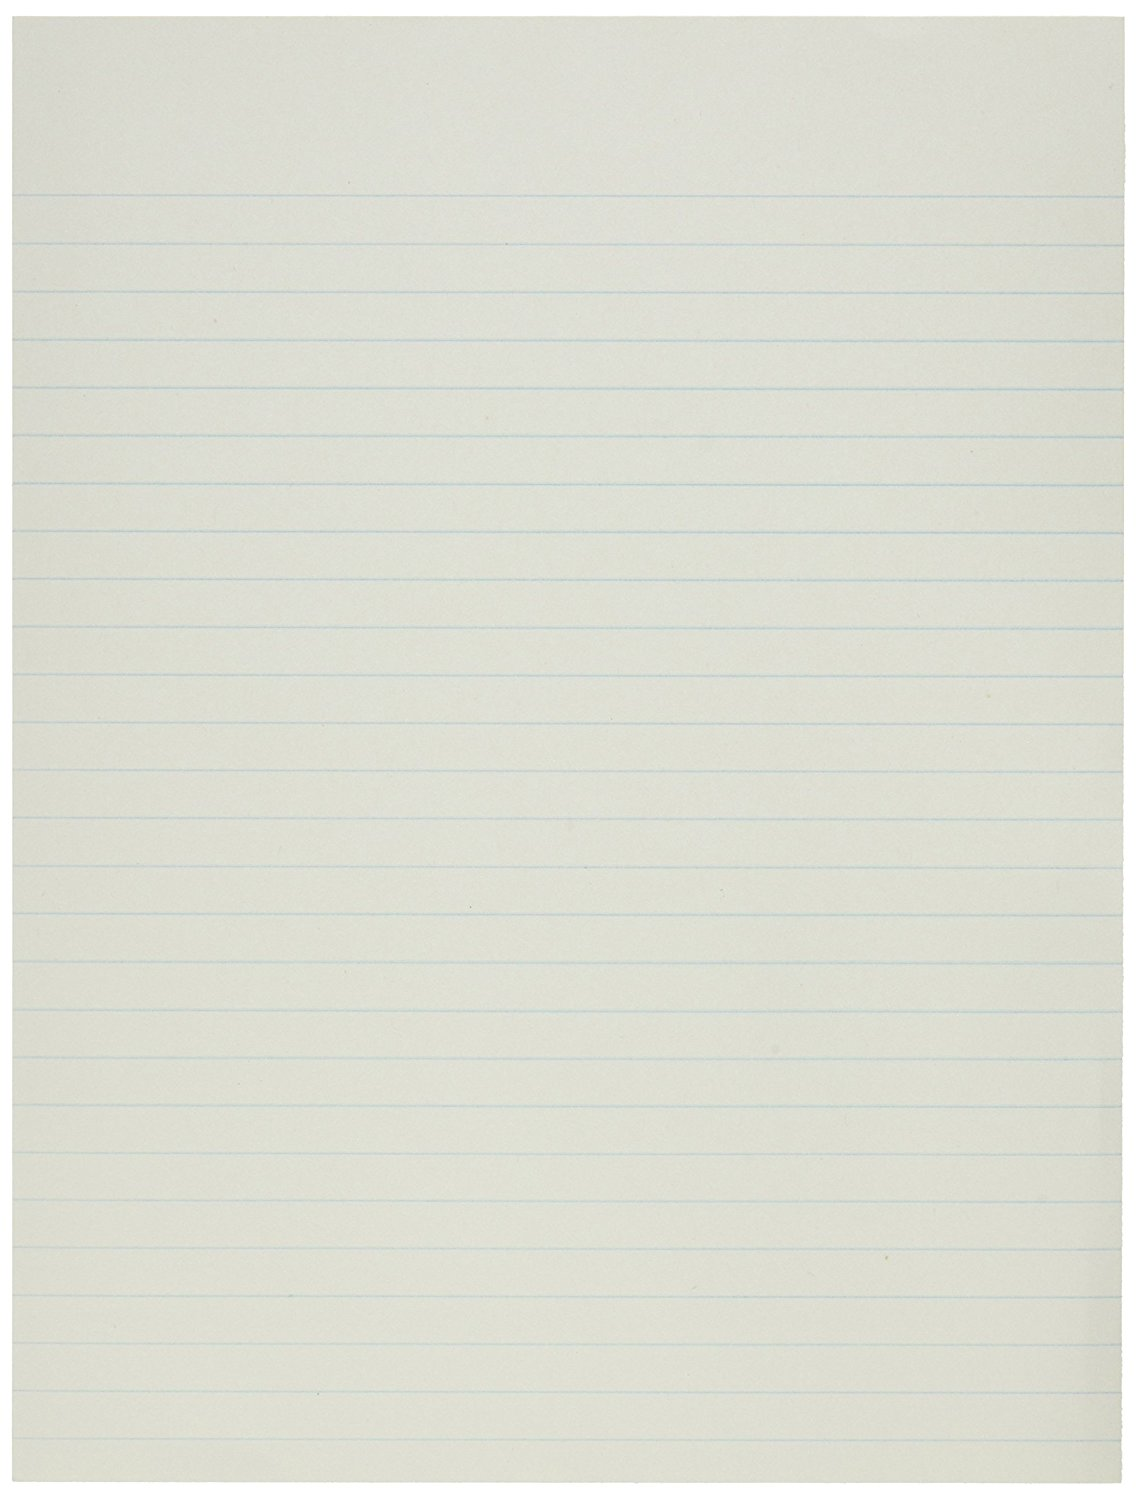 8 X 10-1/2 Essay And Composition Paper, Ruled 3/8 Margin On Both Sides, 20 lb., White - 500 Sheets/Ream